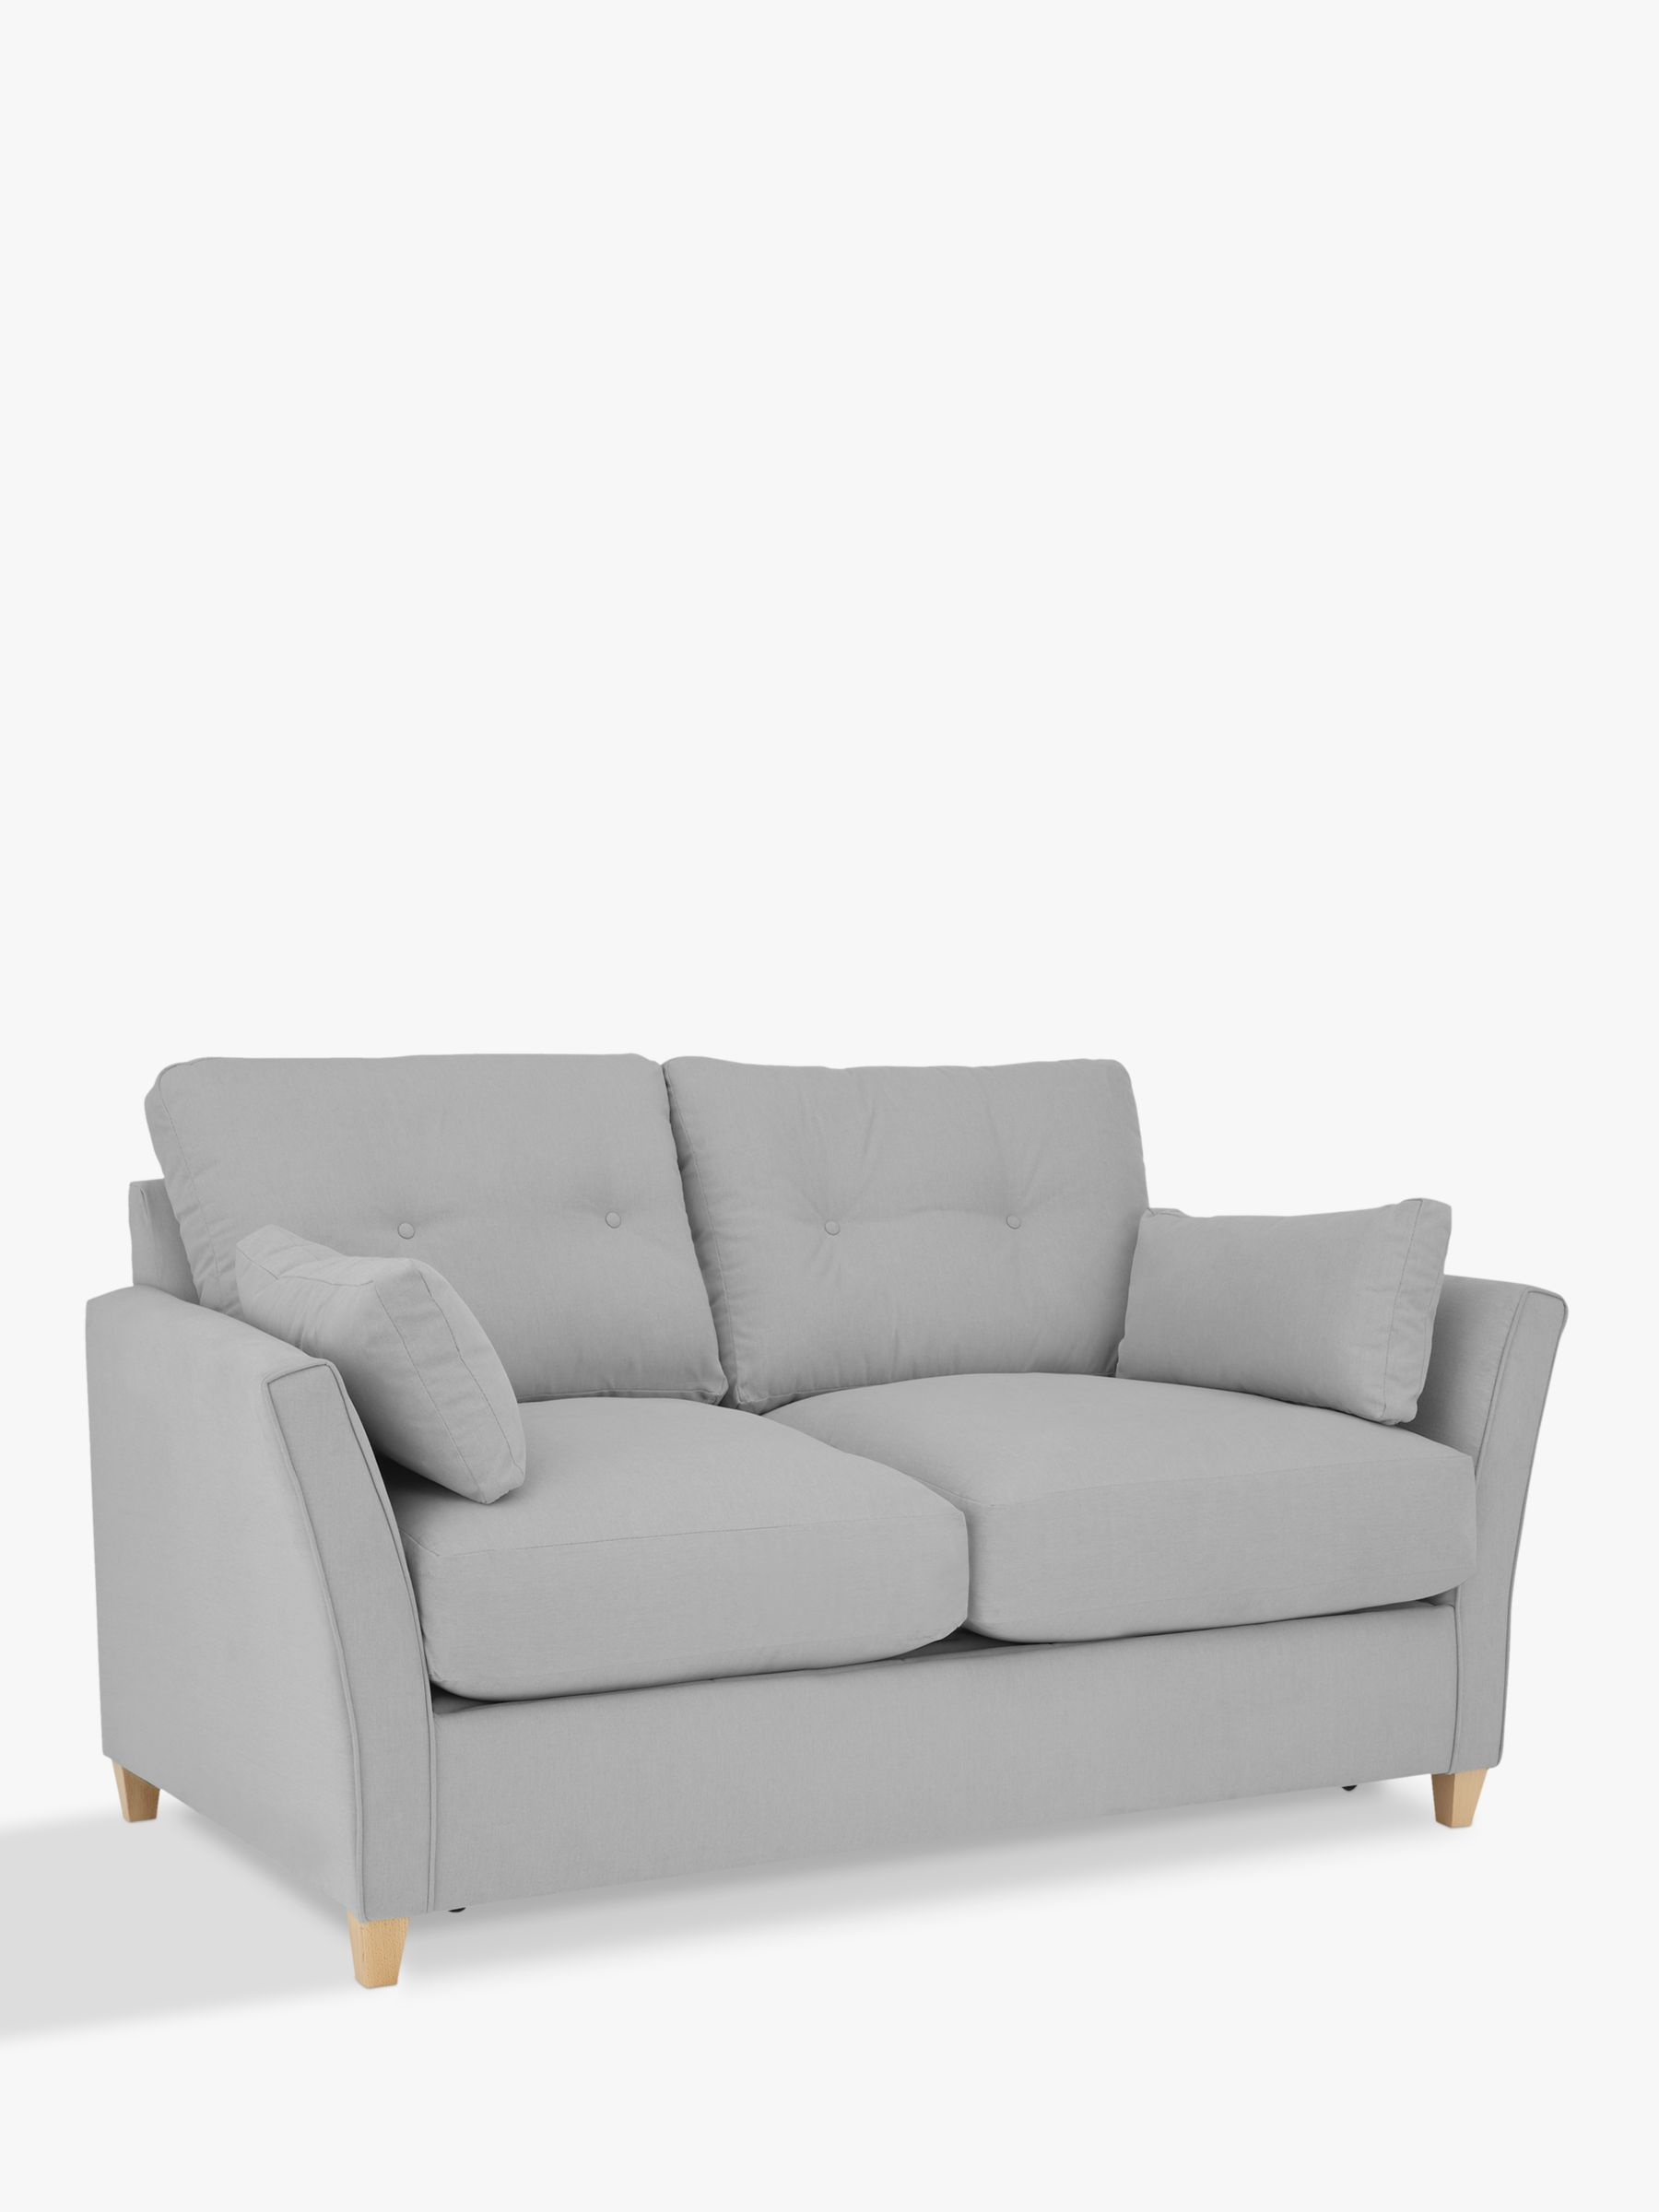 Buy Sofa Bed Online John Lewis Partners Chopin Small Memory Foam Sofa Bed